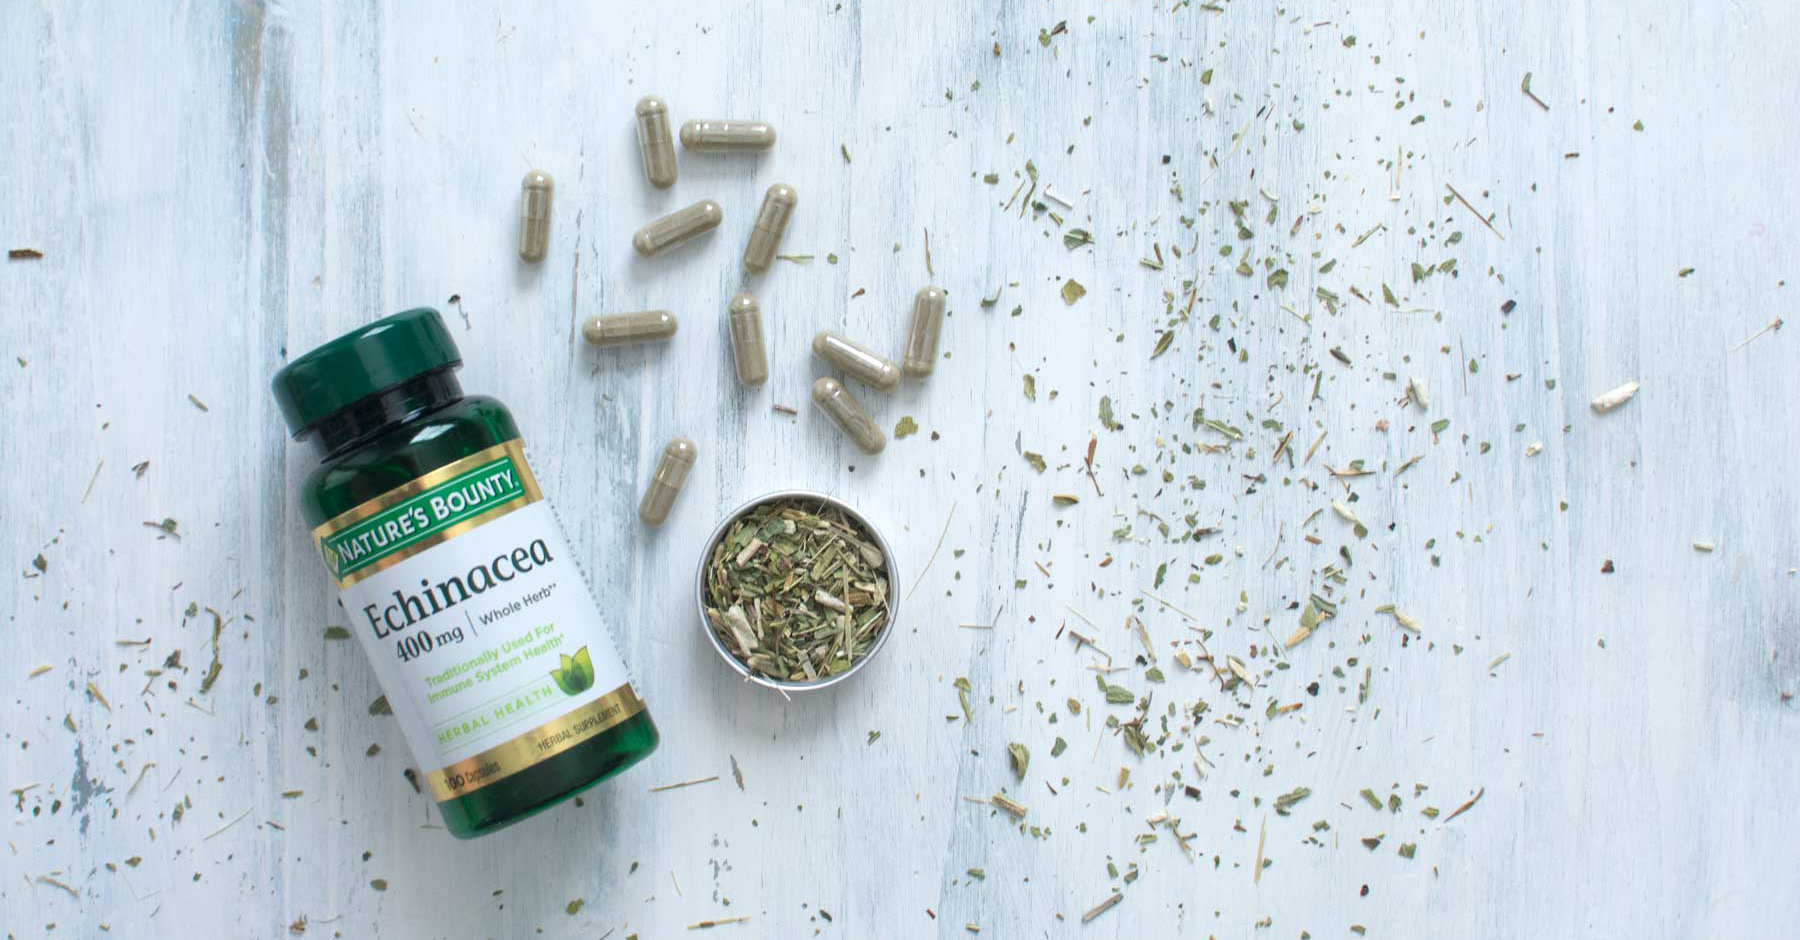 Echinacea capsules are easy, quick, and portable. We also like to have CBD capsules and Vitamin C tablets on hand.